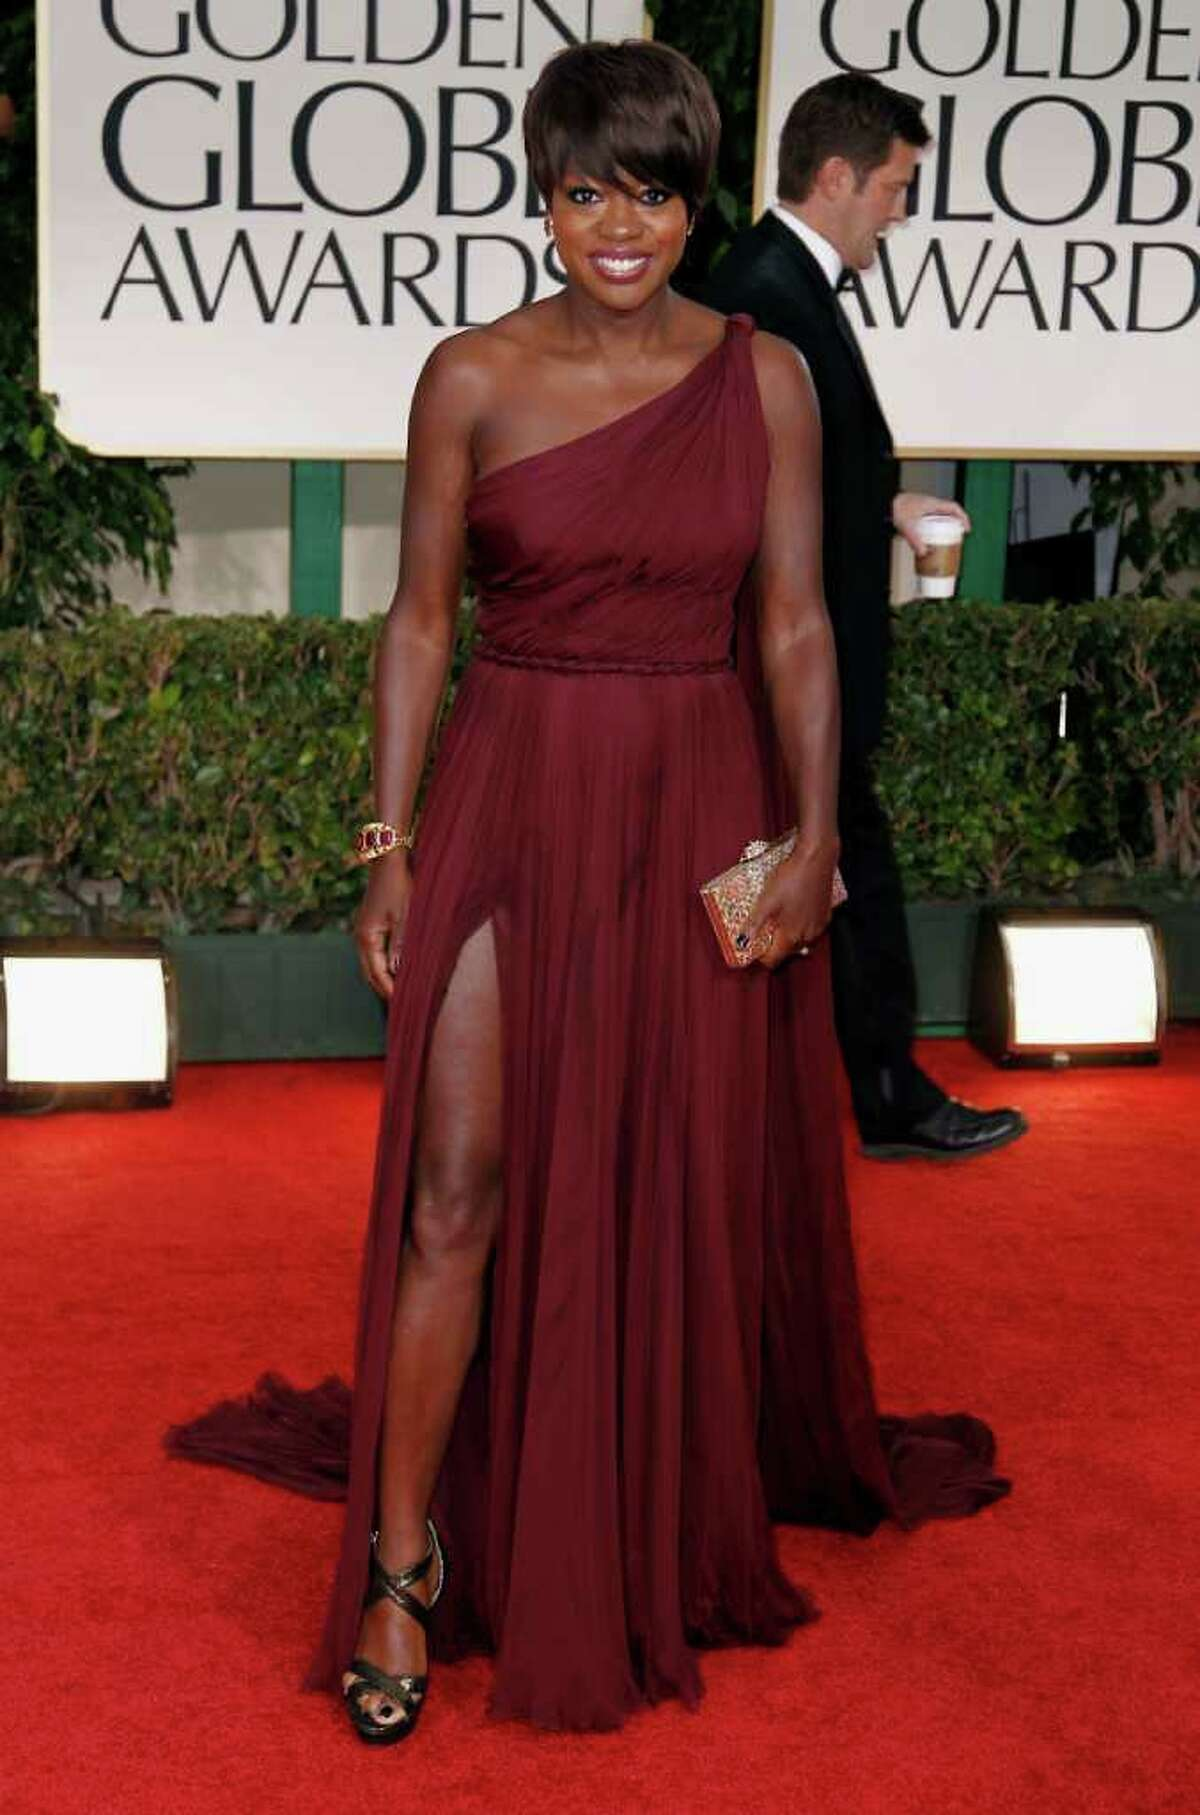 Viola Davis was bold and buff in violet, a sharp contrast to her humble look in The Help.